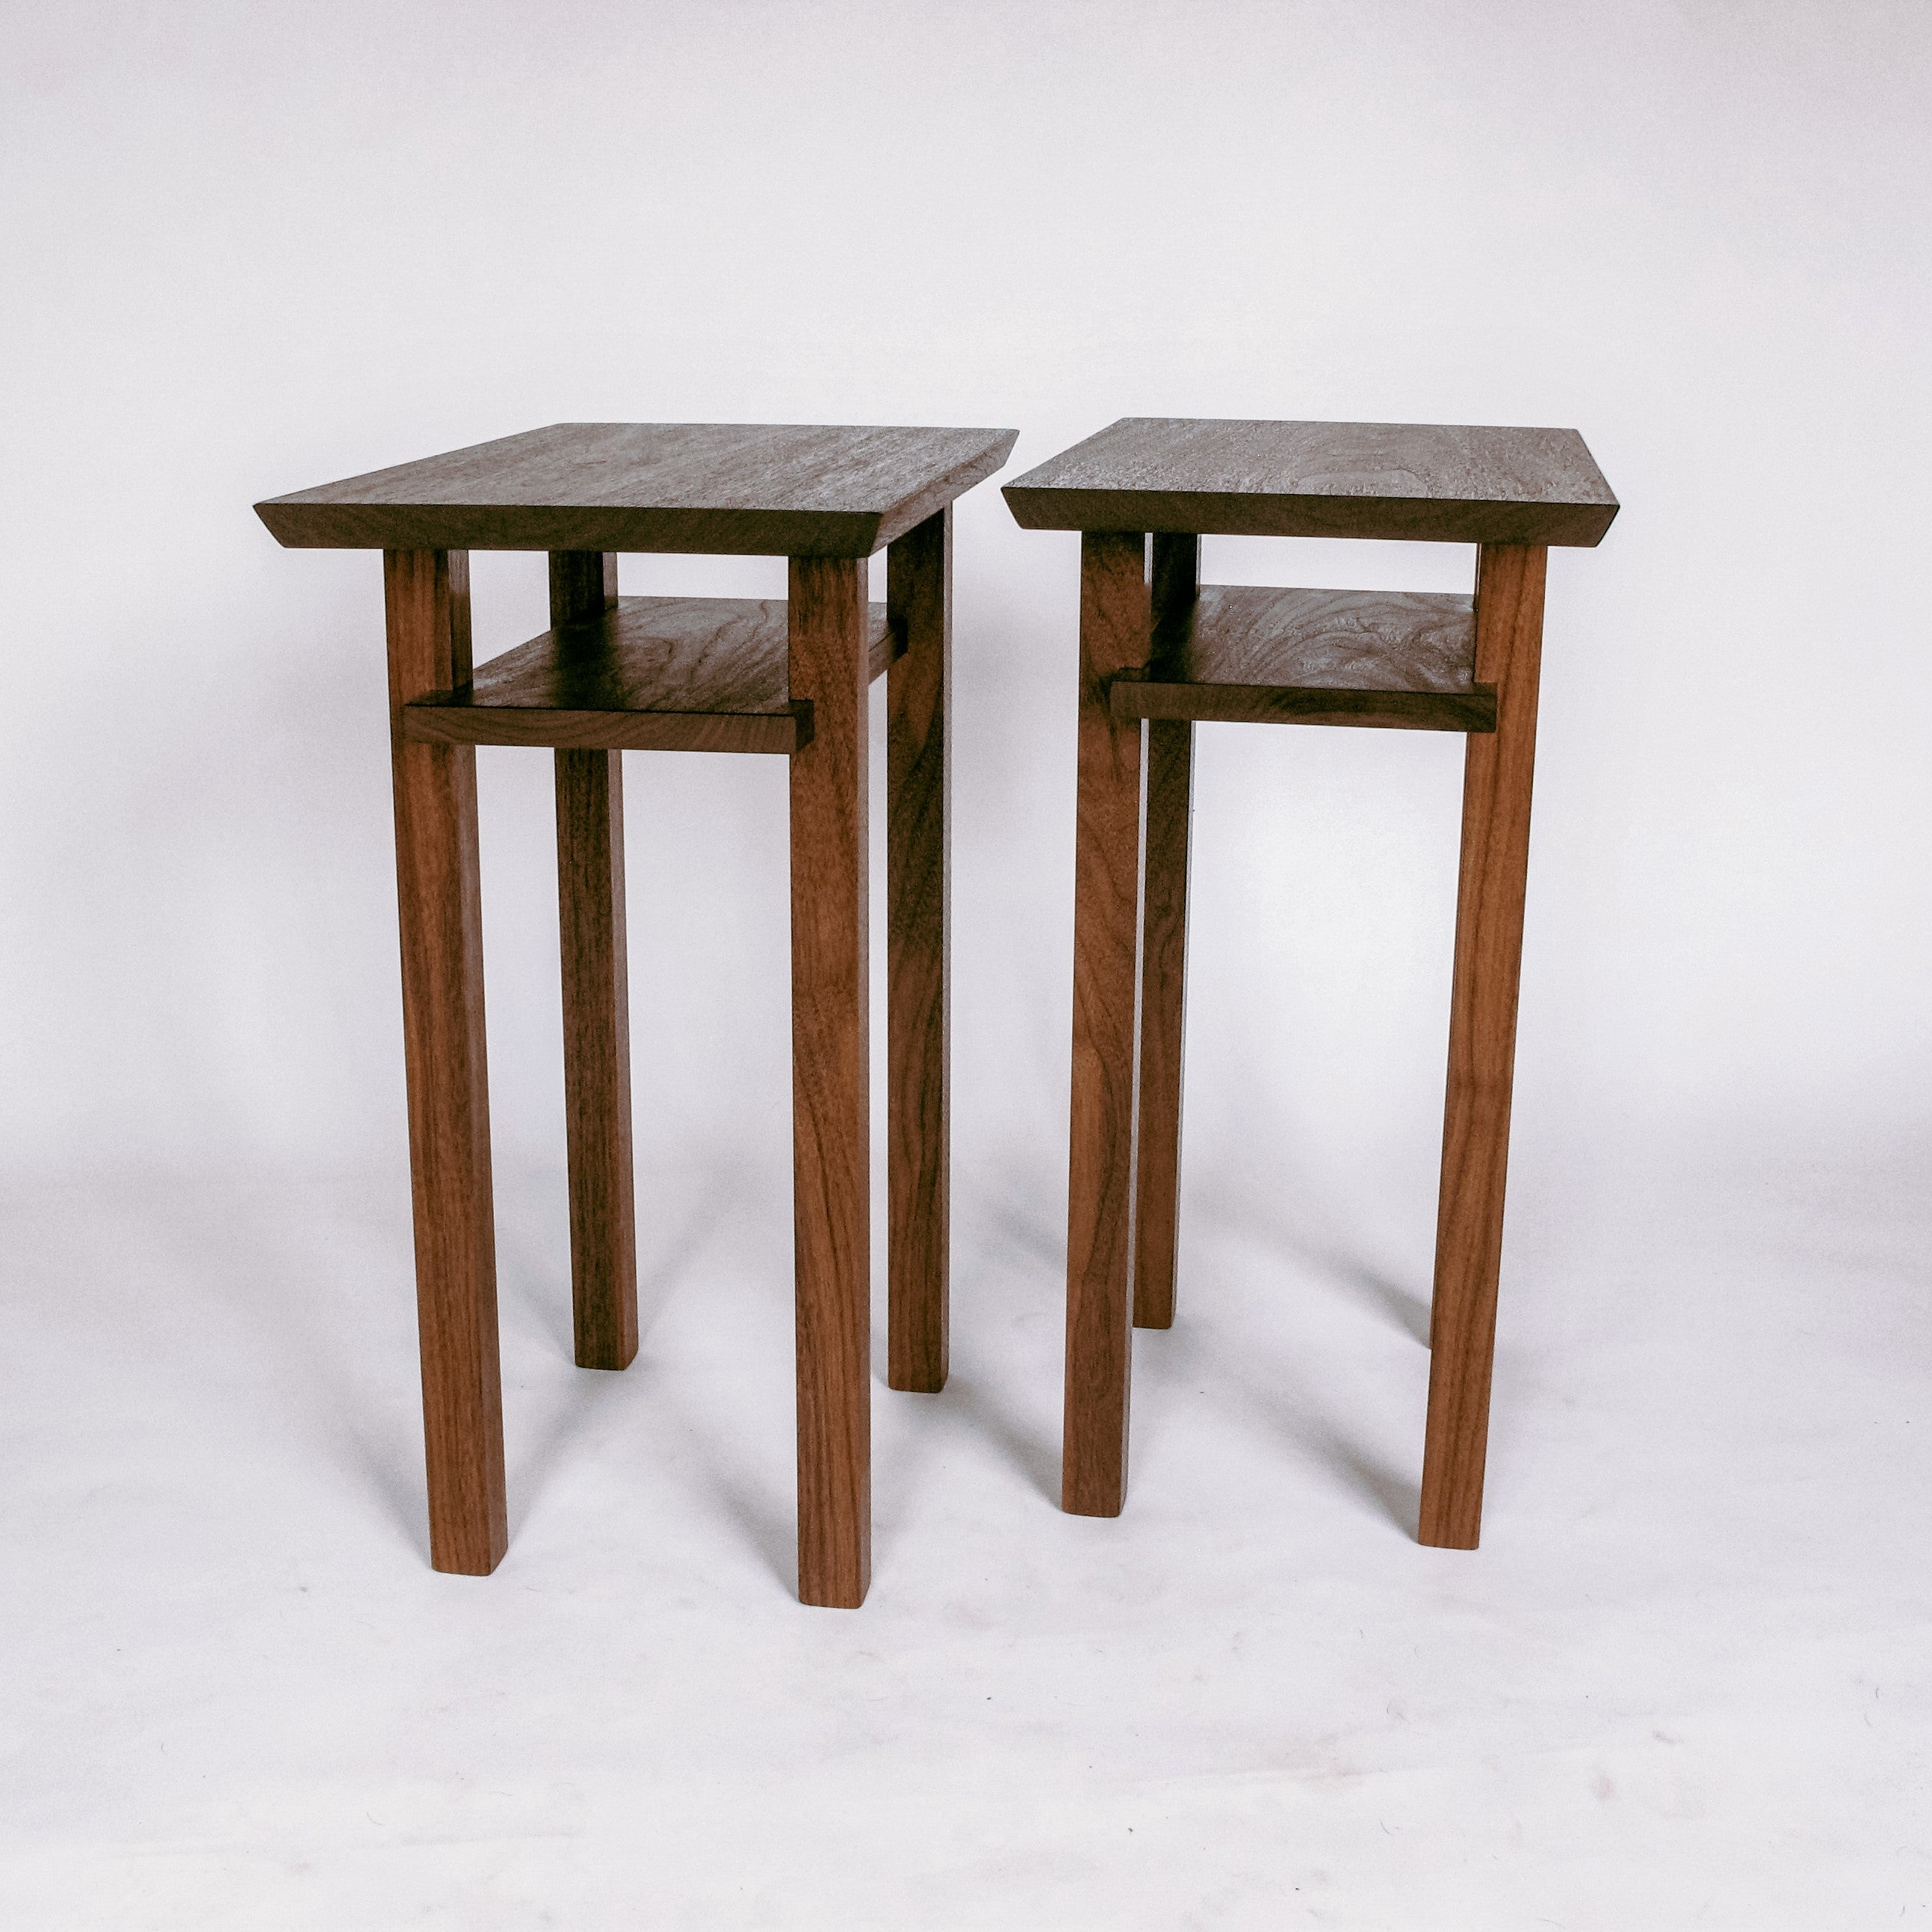 small narrow tables - narrow nightstands or end tables